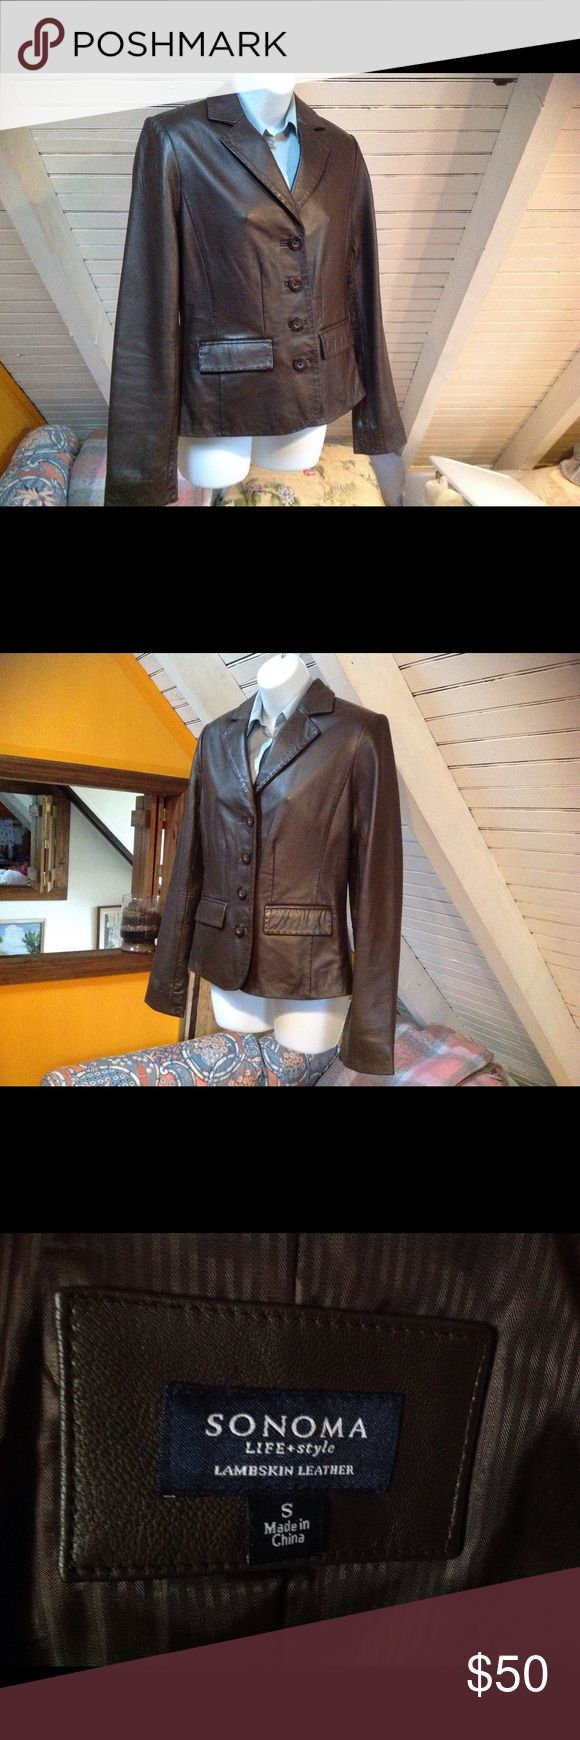 Stunning brown lambskin leather jacket. Brown lambskin leather jacket with lovelt stitching. Sonoma Jackets & Coats Blazers